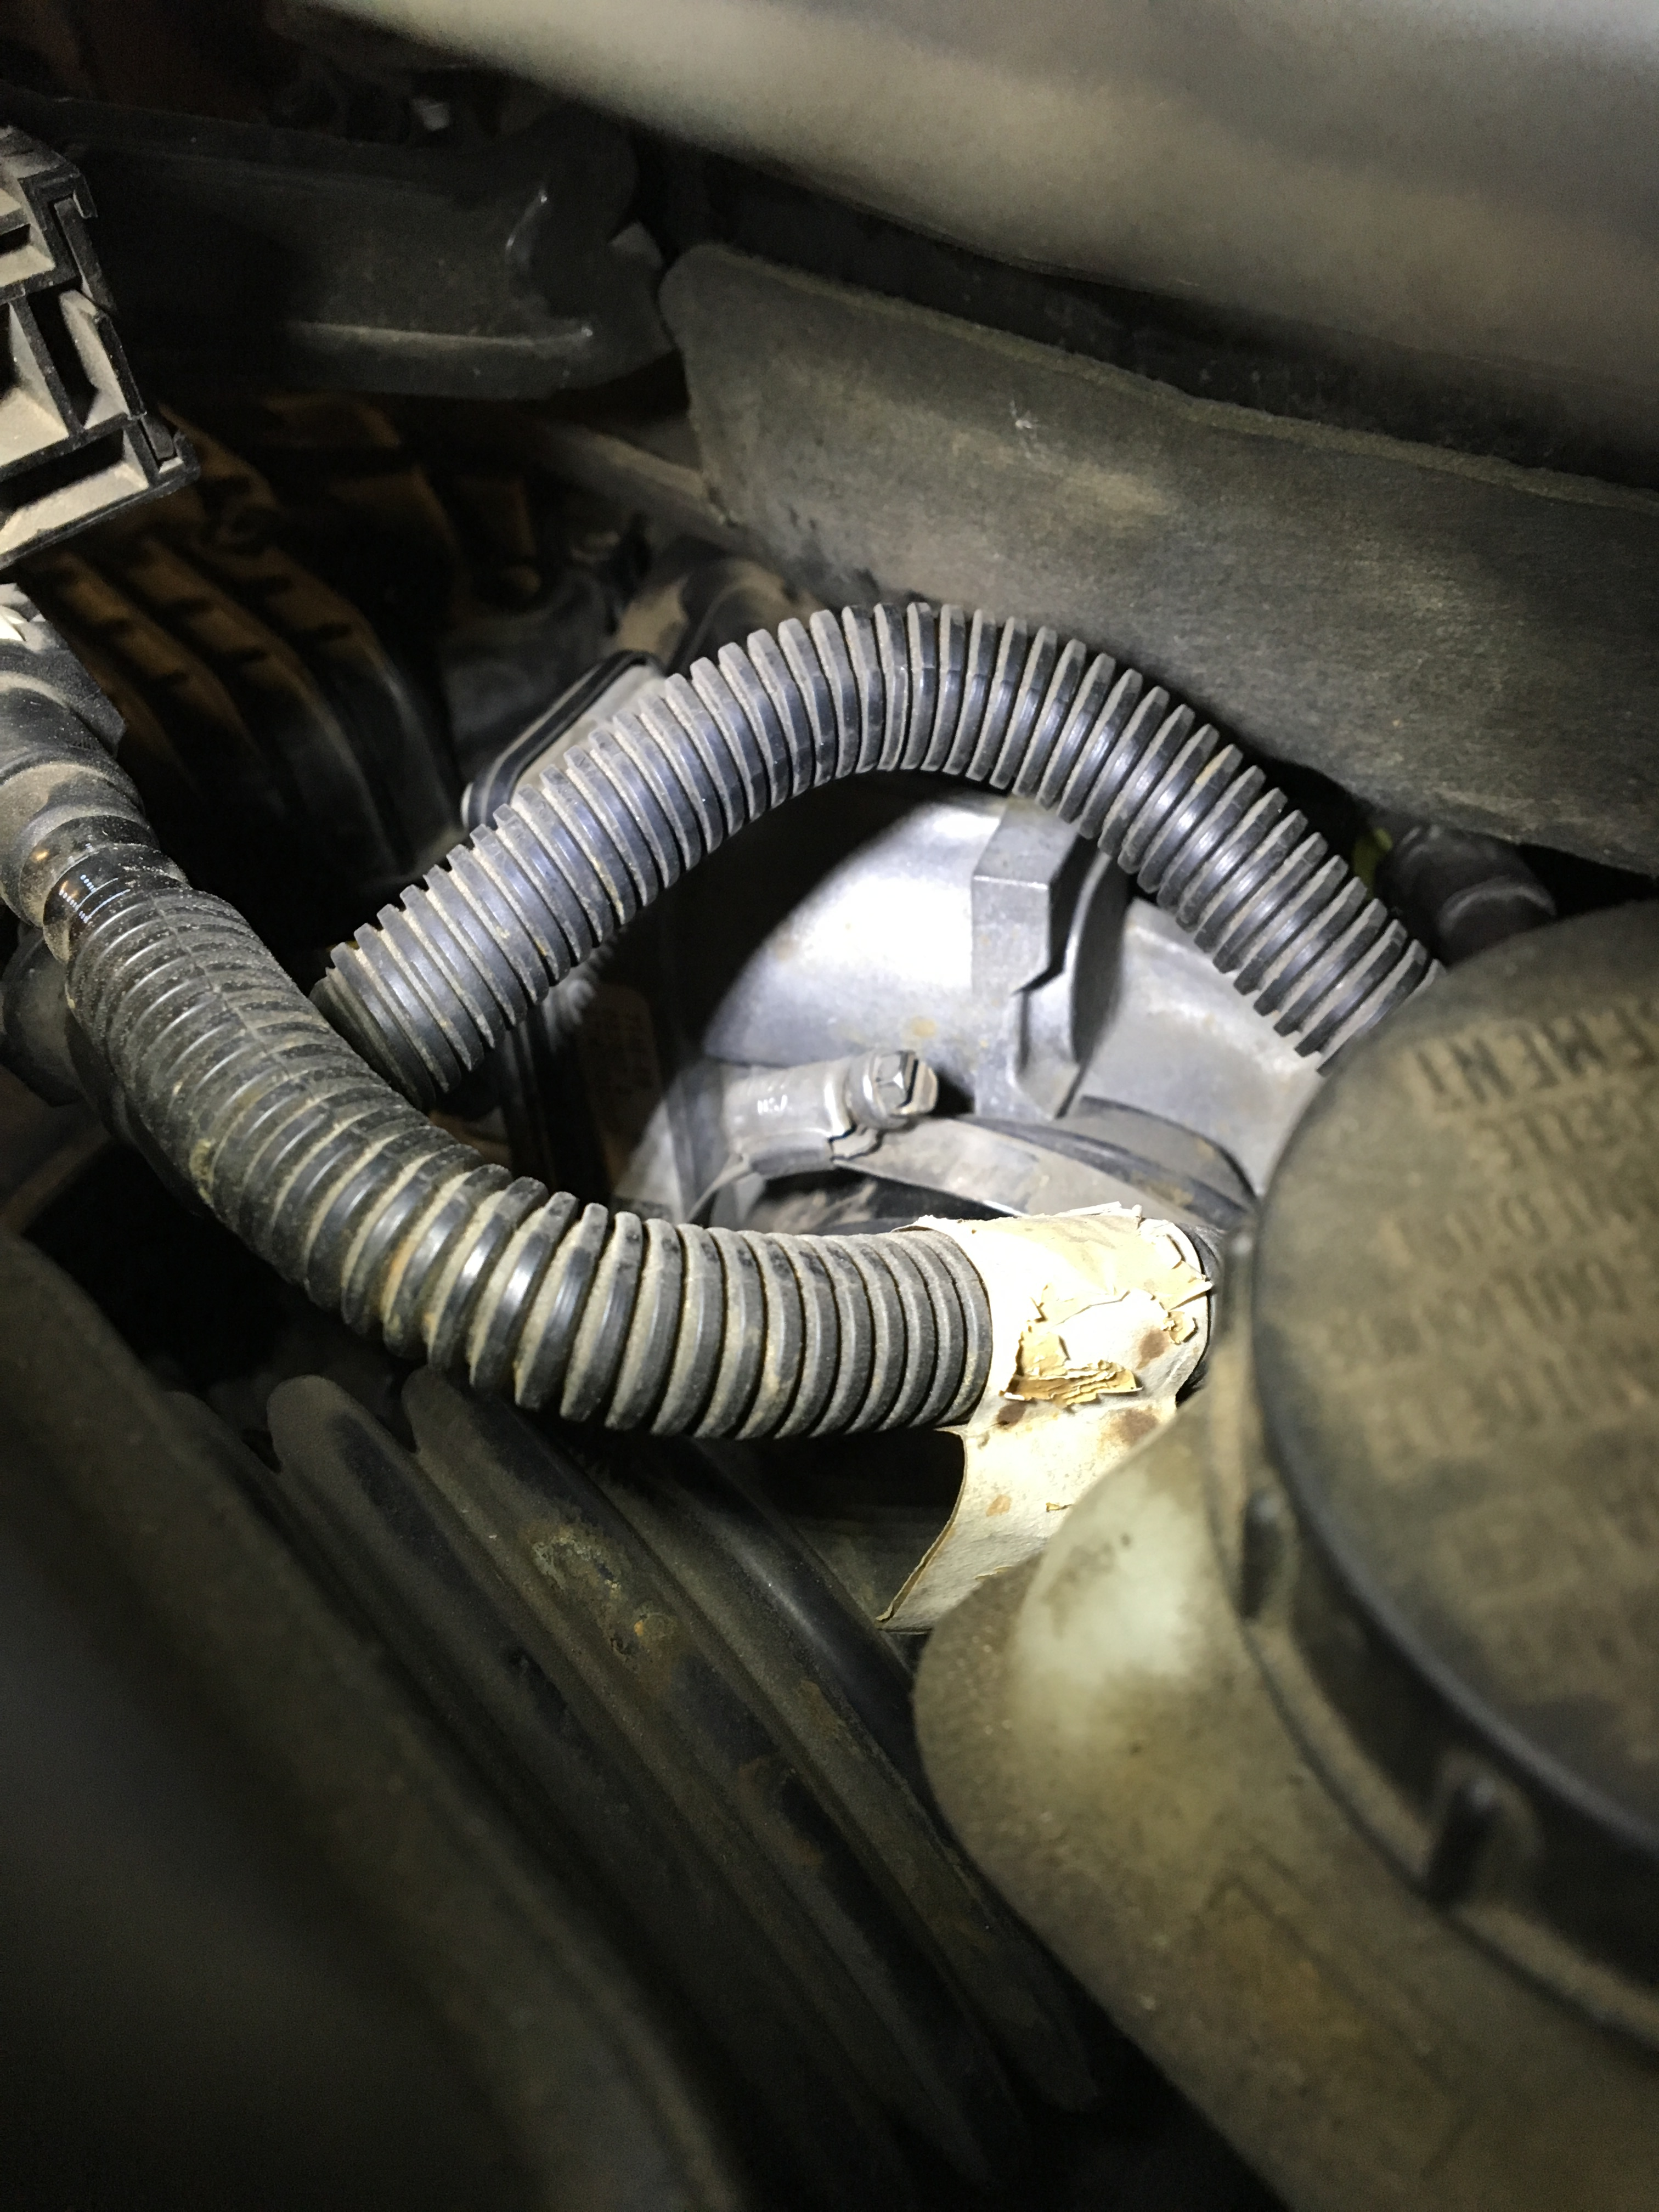 How to Remove Upper Intake Manifold, Replace Spark Plugs